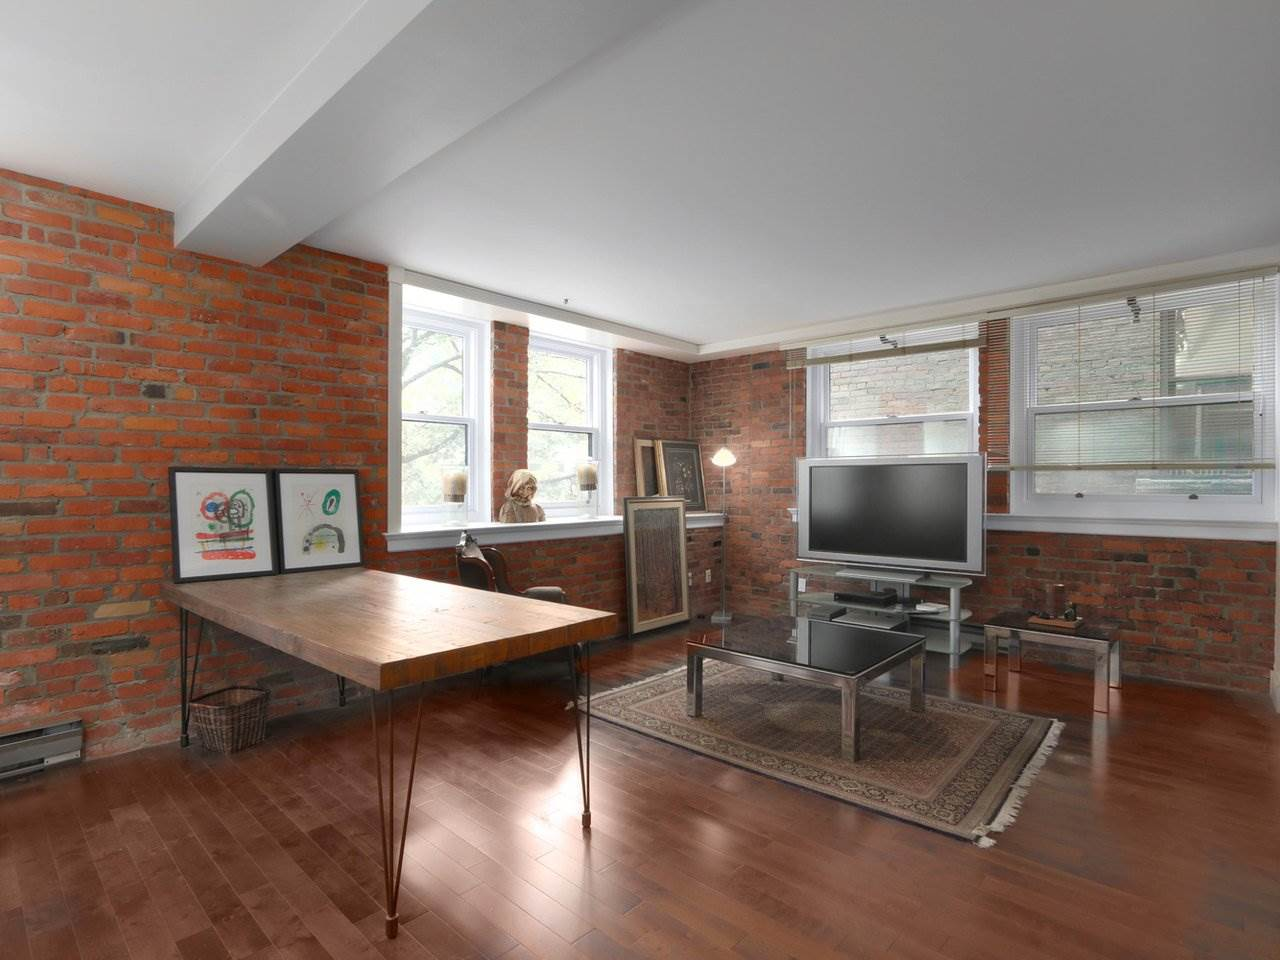 205 233 ABBOTT STREET - Downtown VW Apartment/Condo for sale, 1 Bedroom (R2590257) - #1